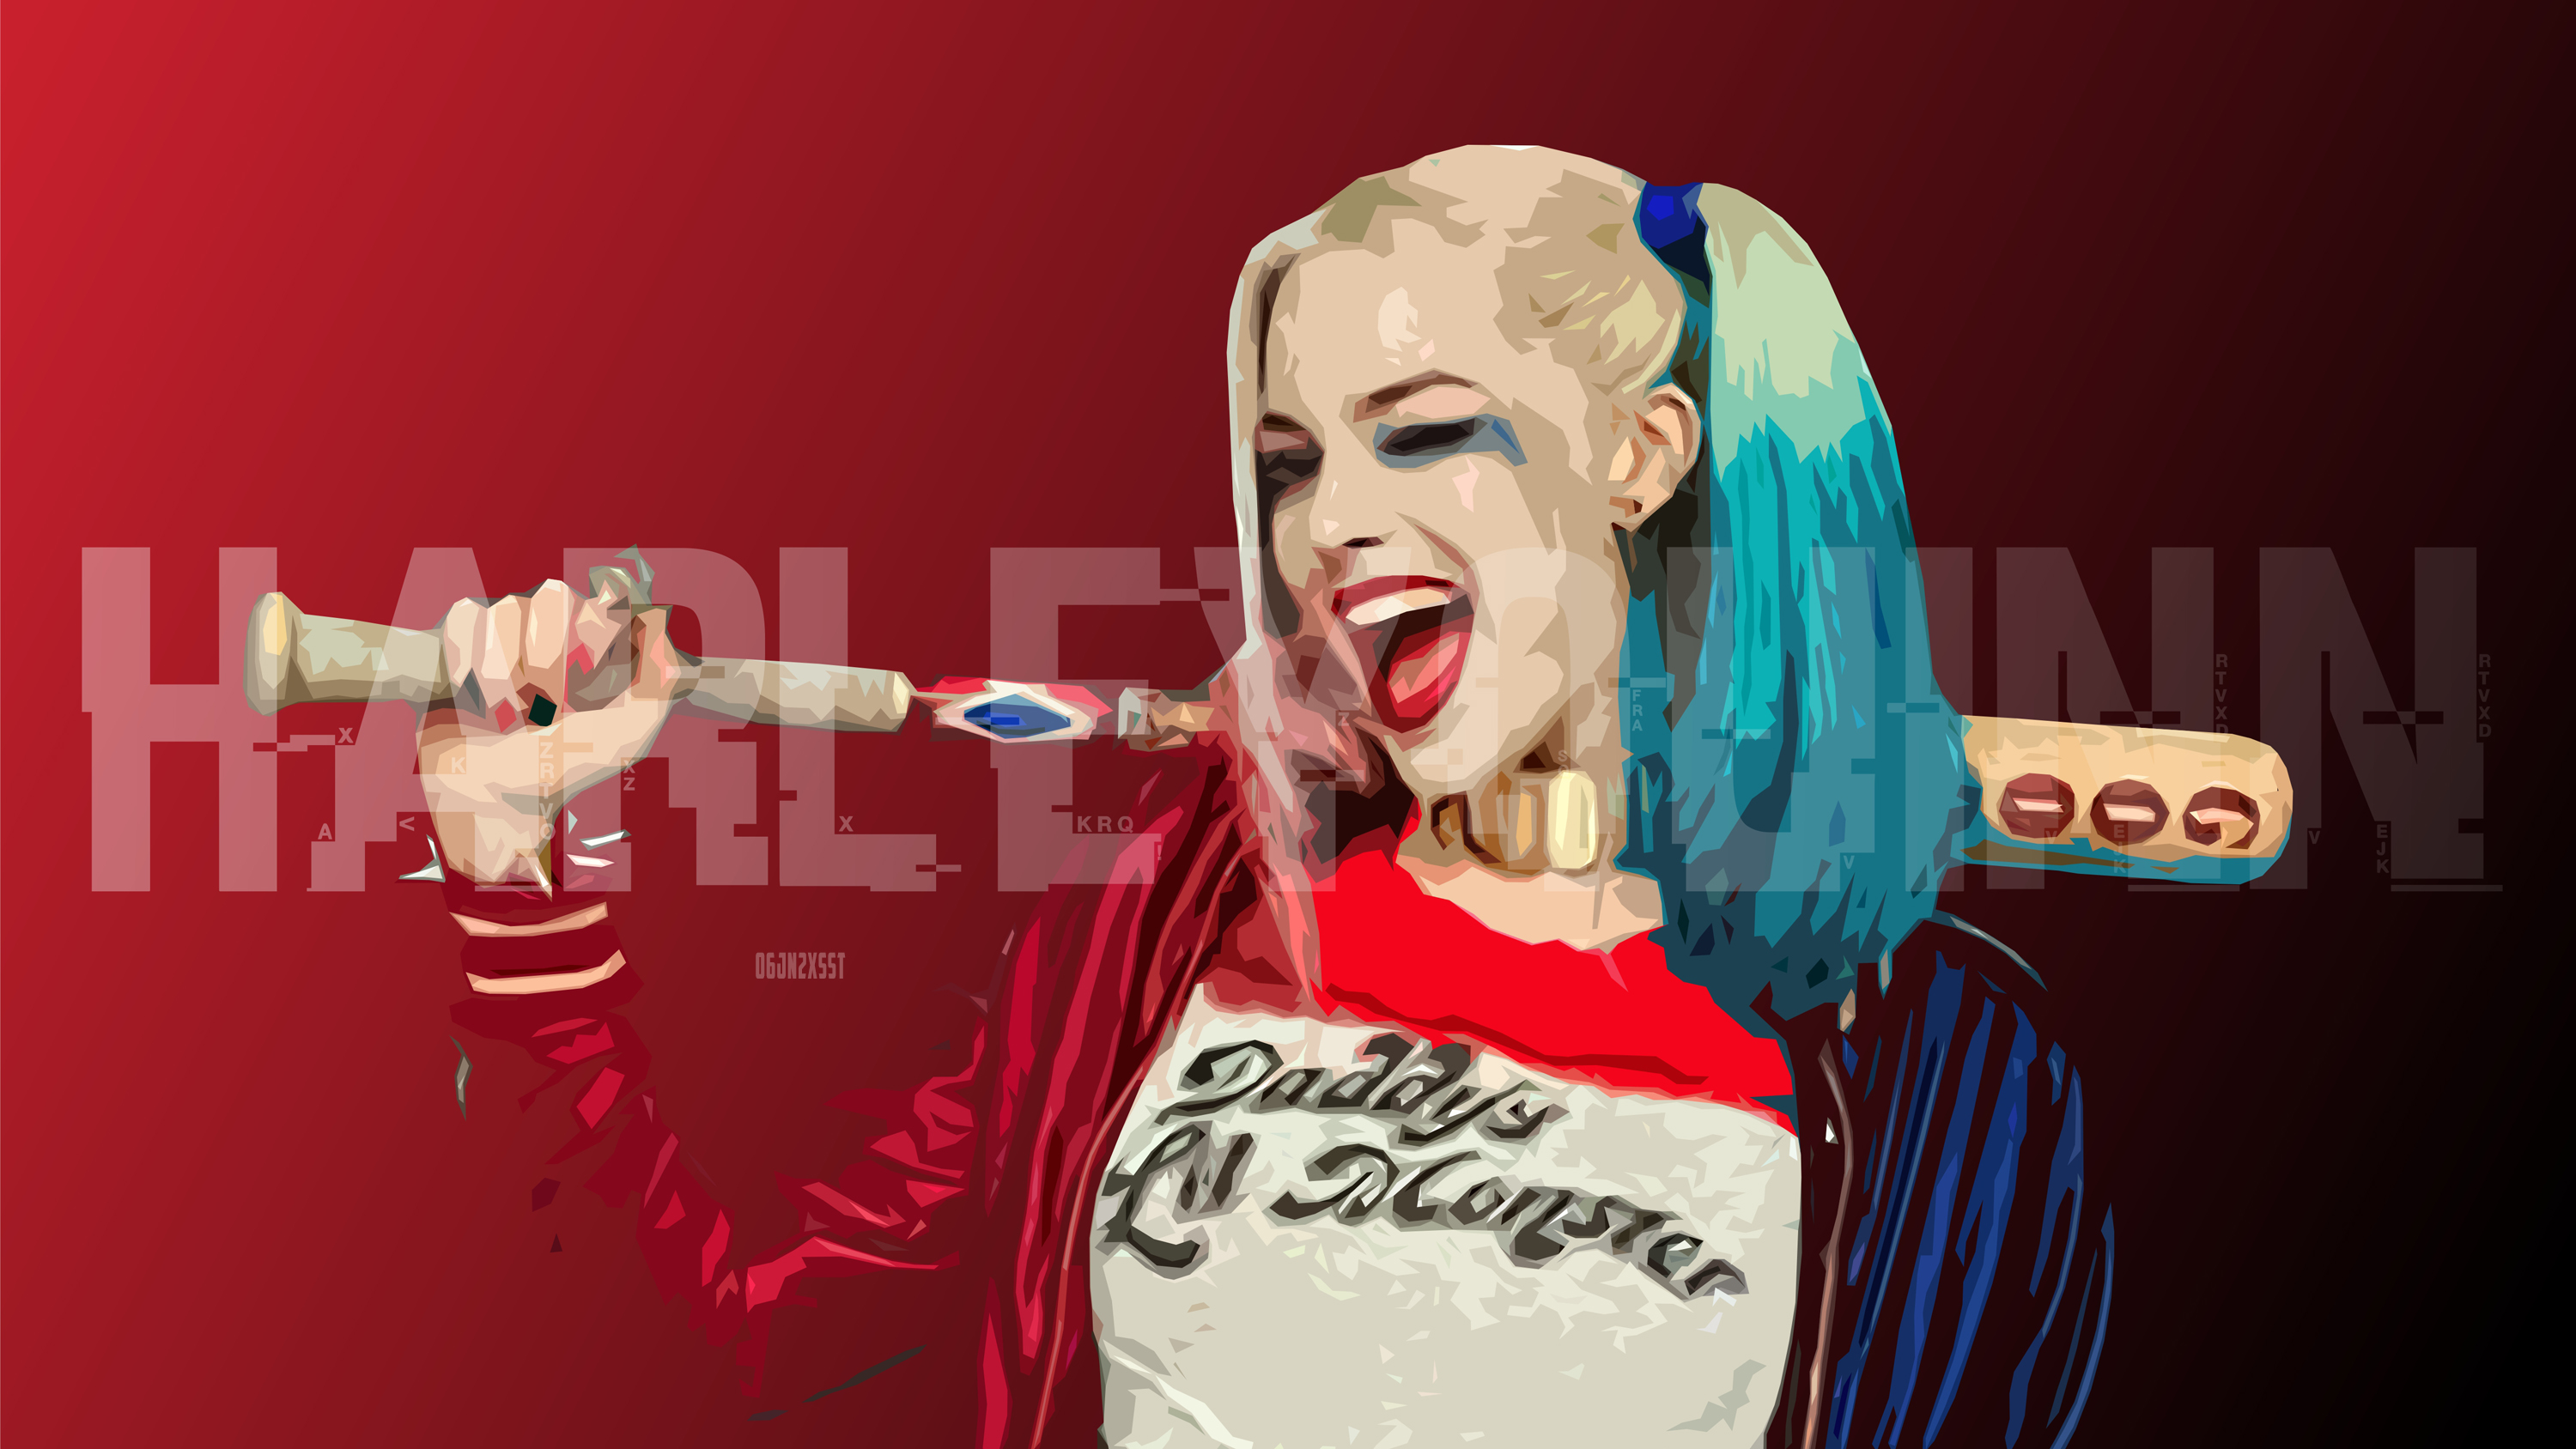 Harley Quinn 21774 Hd Wallpaper Backgrounds Download